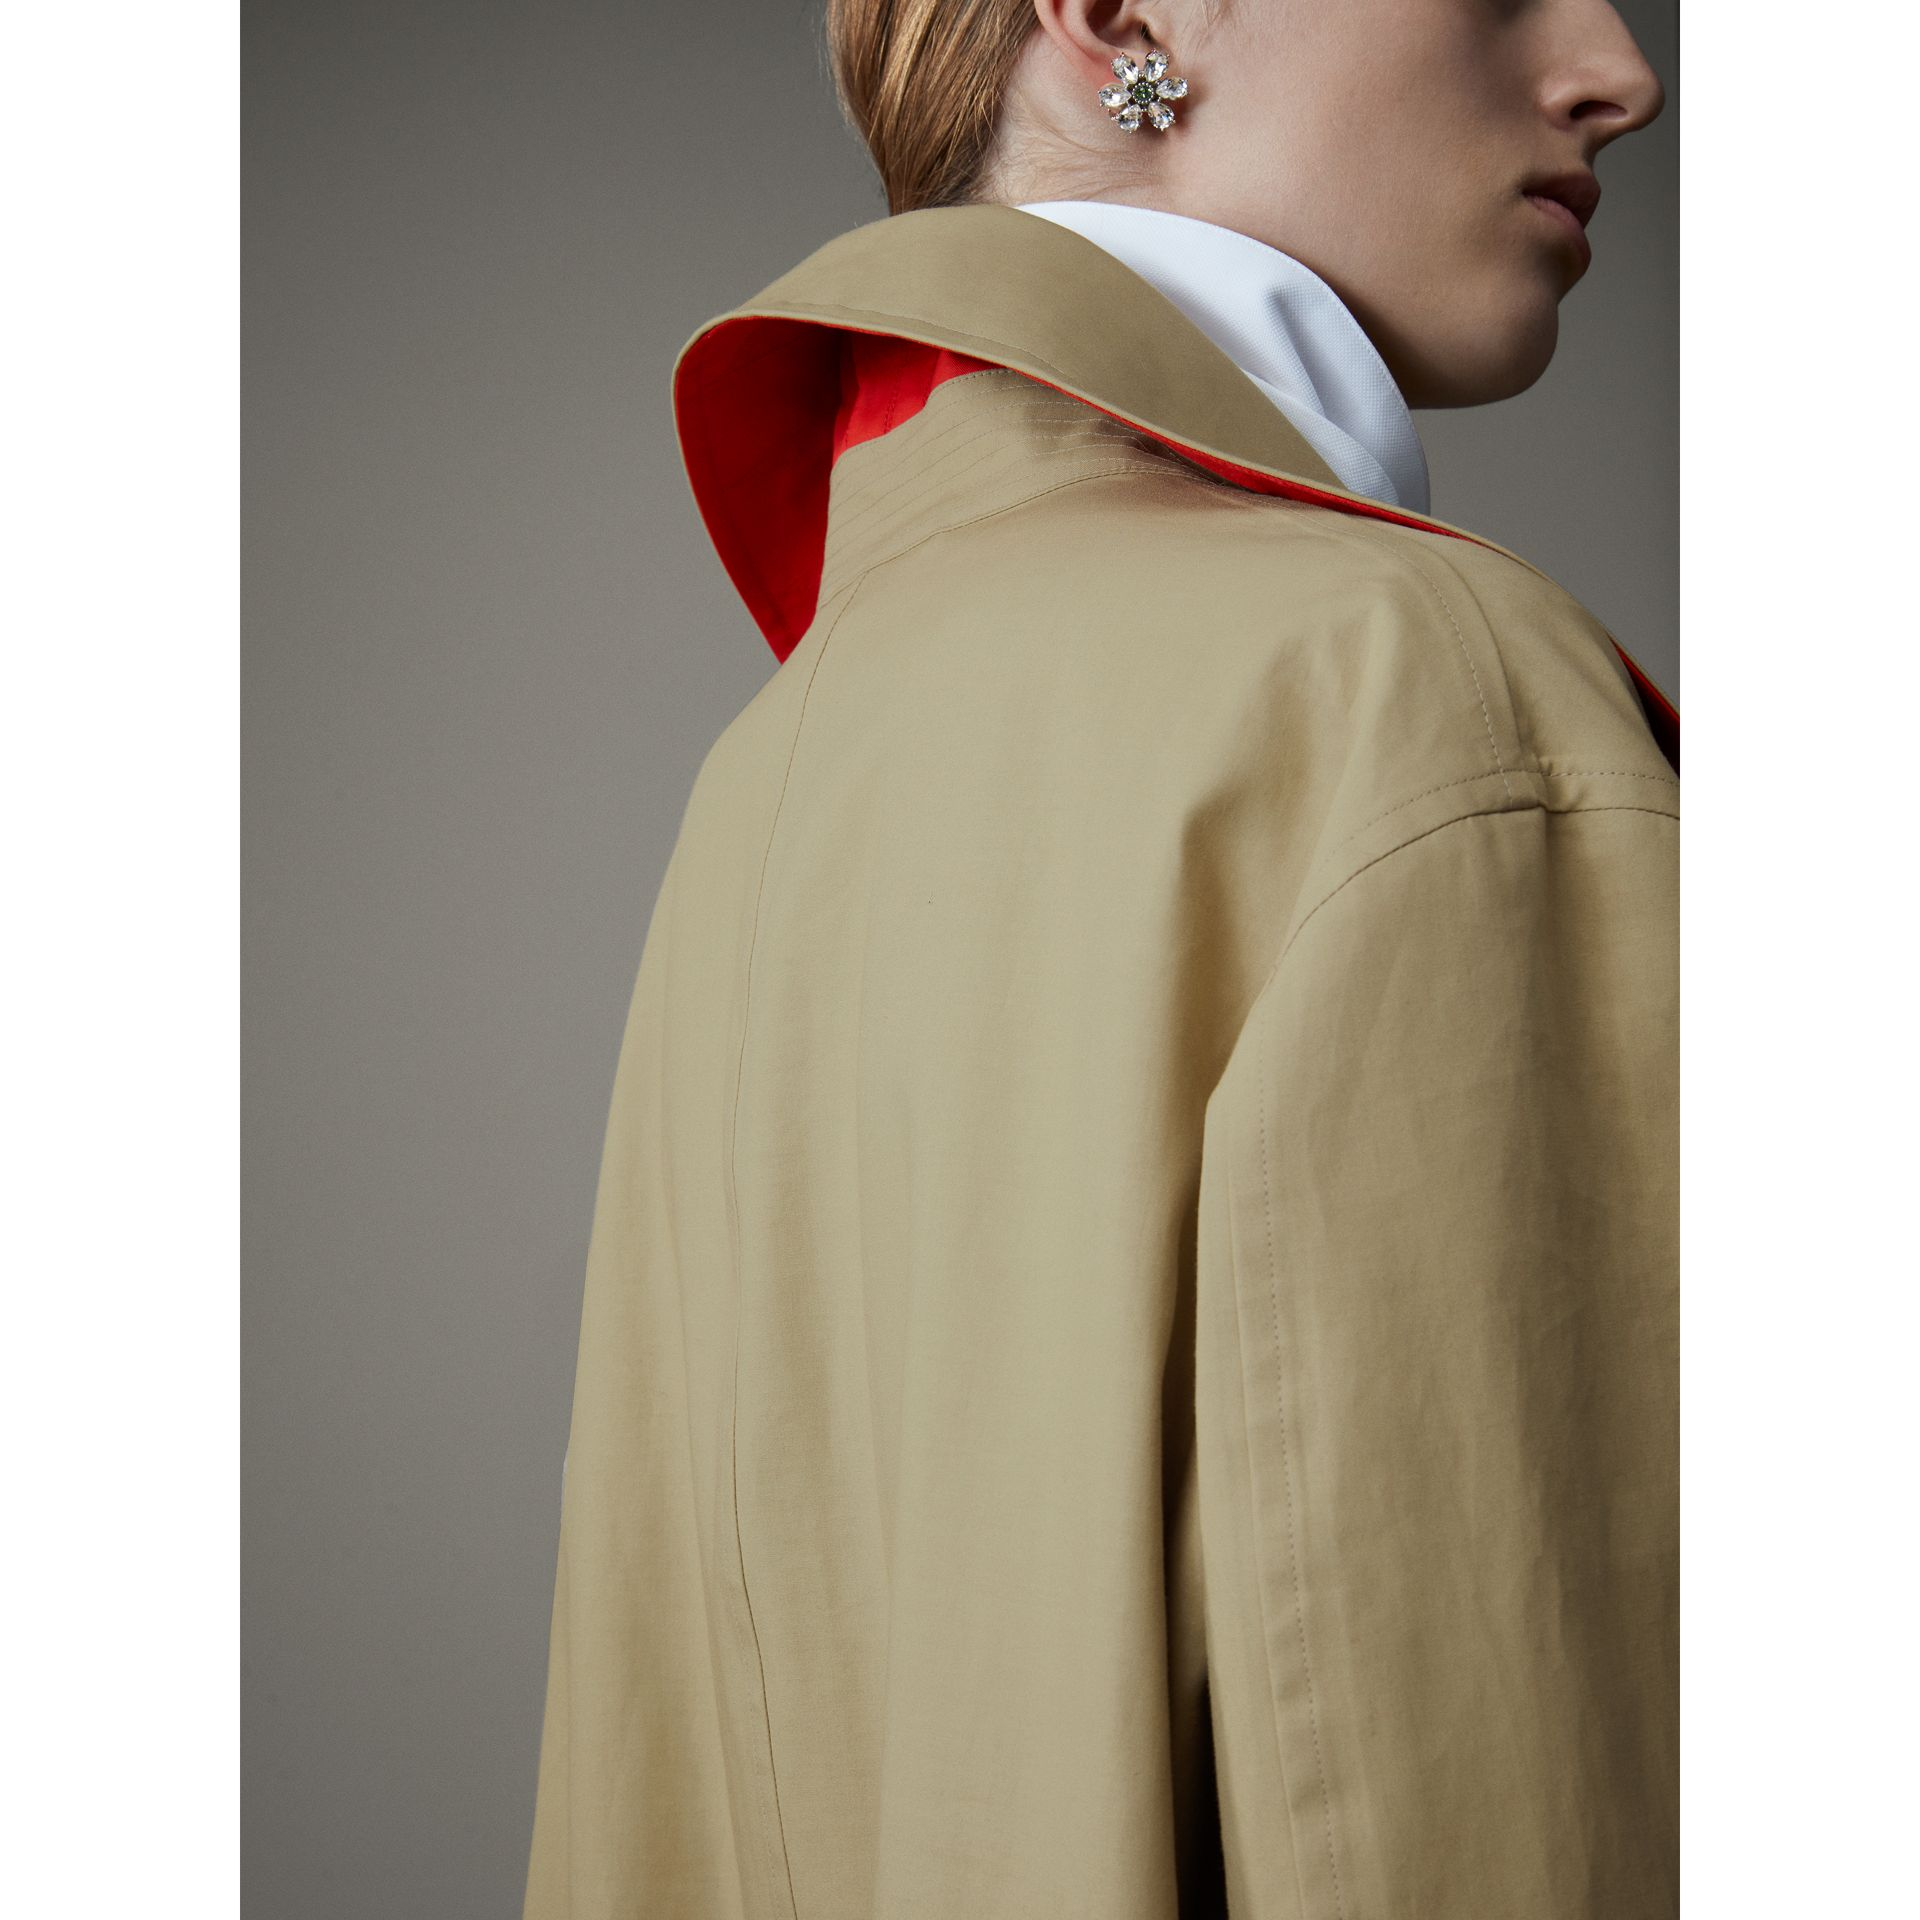 Bonded Cotton Poplin Seam-sealed Car Coat in Beige/red - Women | Burberry Hong Kong - gallery image 5